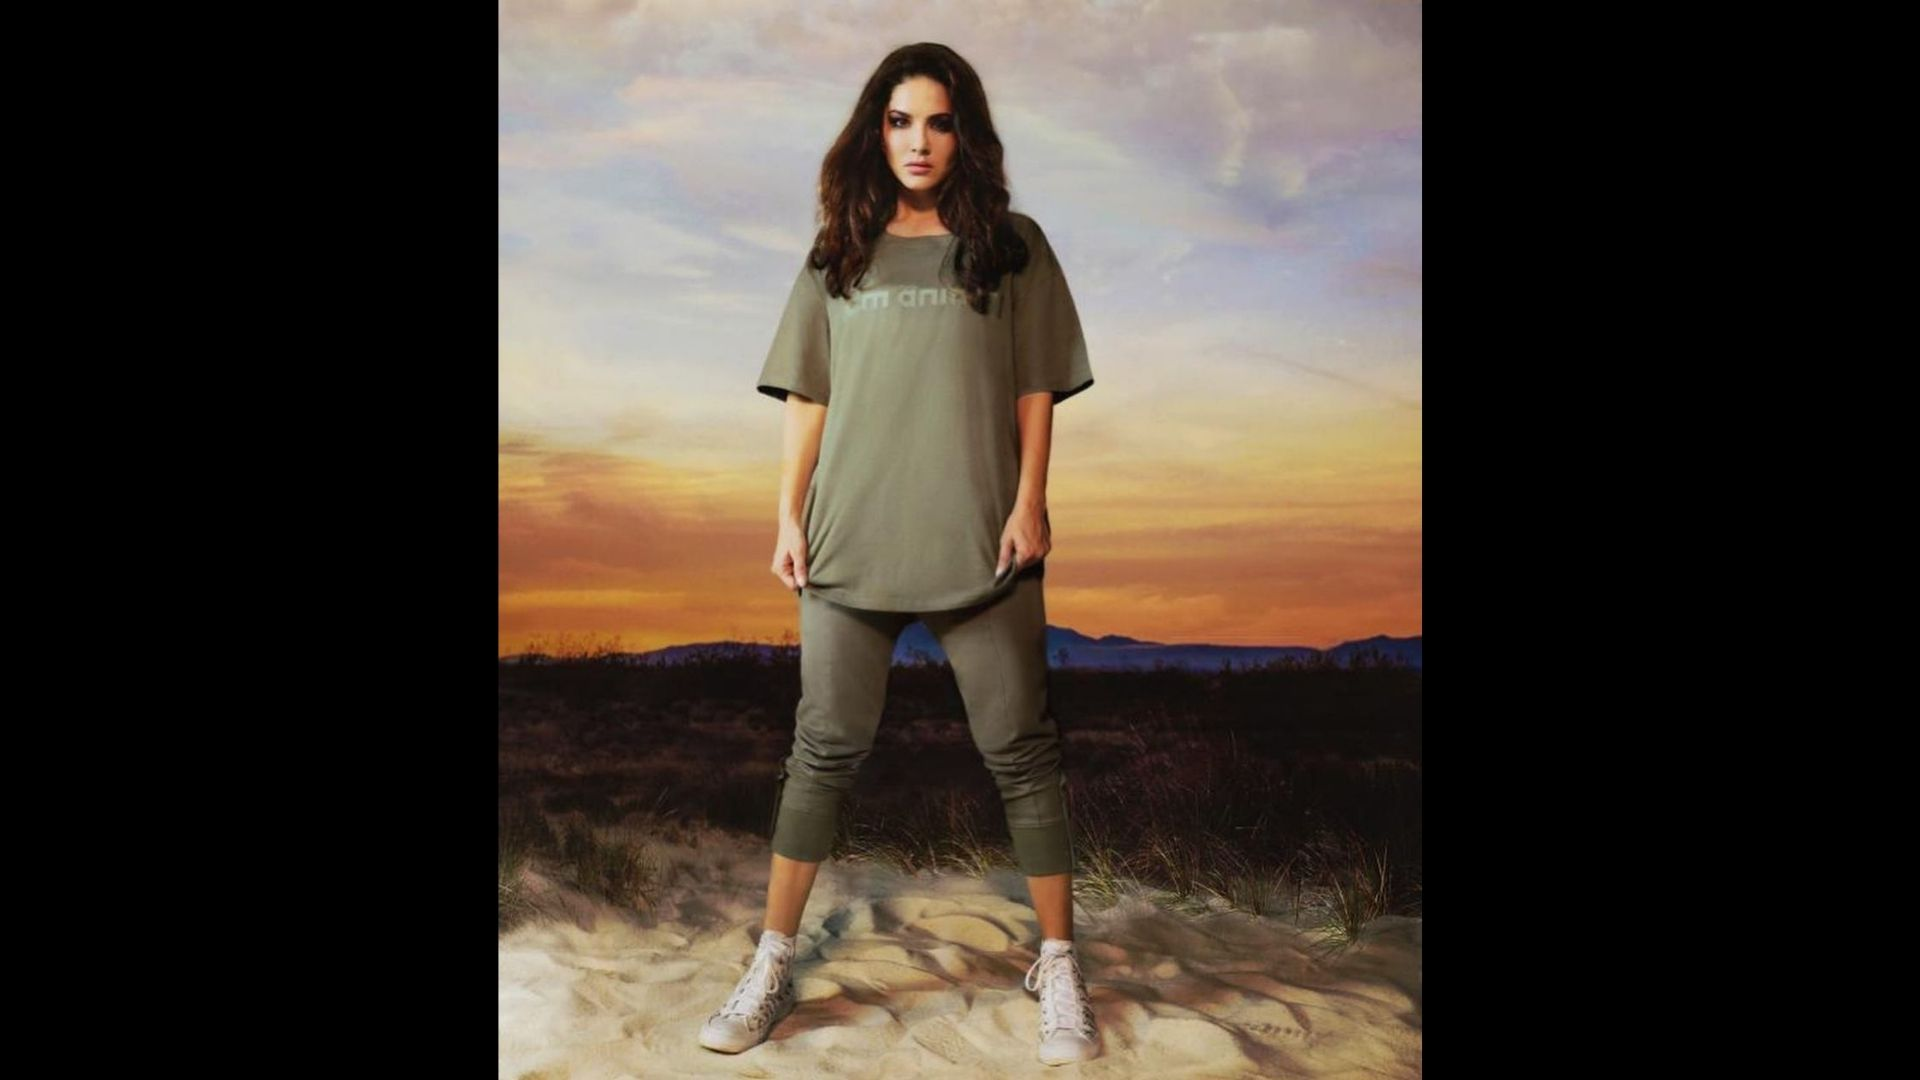 Sunny Leone's Fun And Goofy In Green Sweatshirt And Matching Pants; Her Attire Is Perfect For A Lazy Weekend